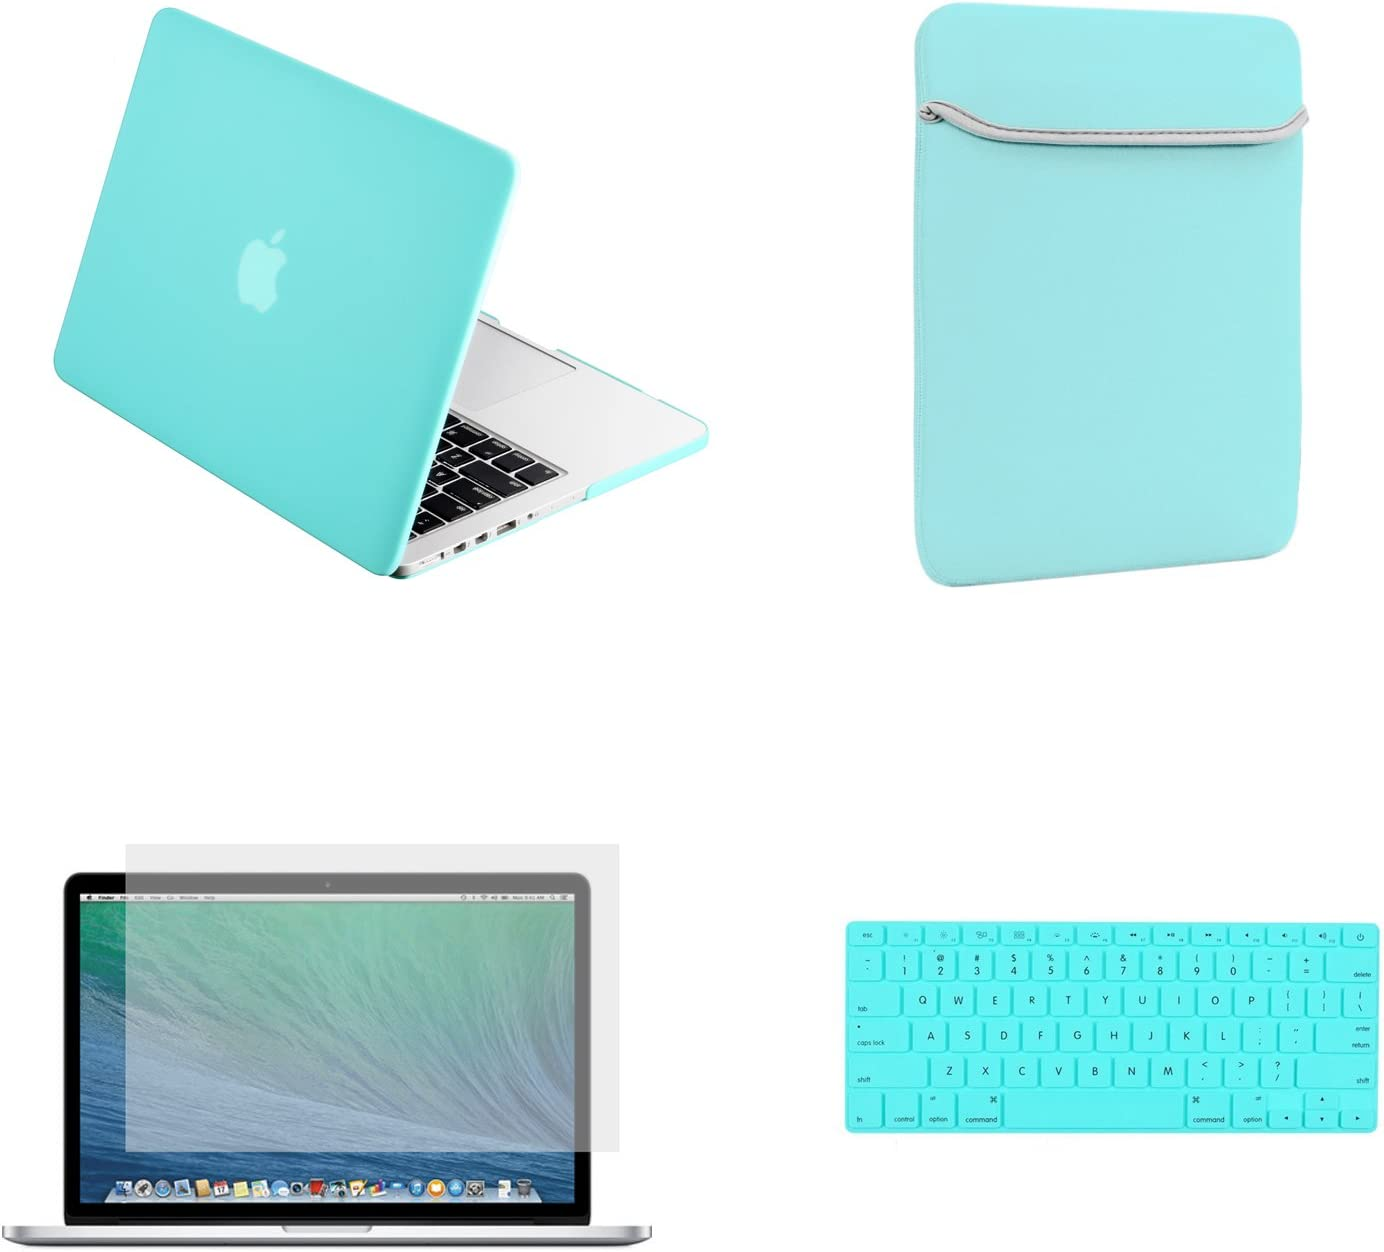 Unik Case-4 in 1 13 Inch Rubberized Hard Case,Screen Portector,Sleeve Bag /& Silicone Skin for Macbook 13 Air A1369//A1466 Shell Cover-Black